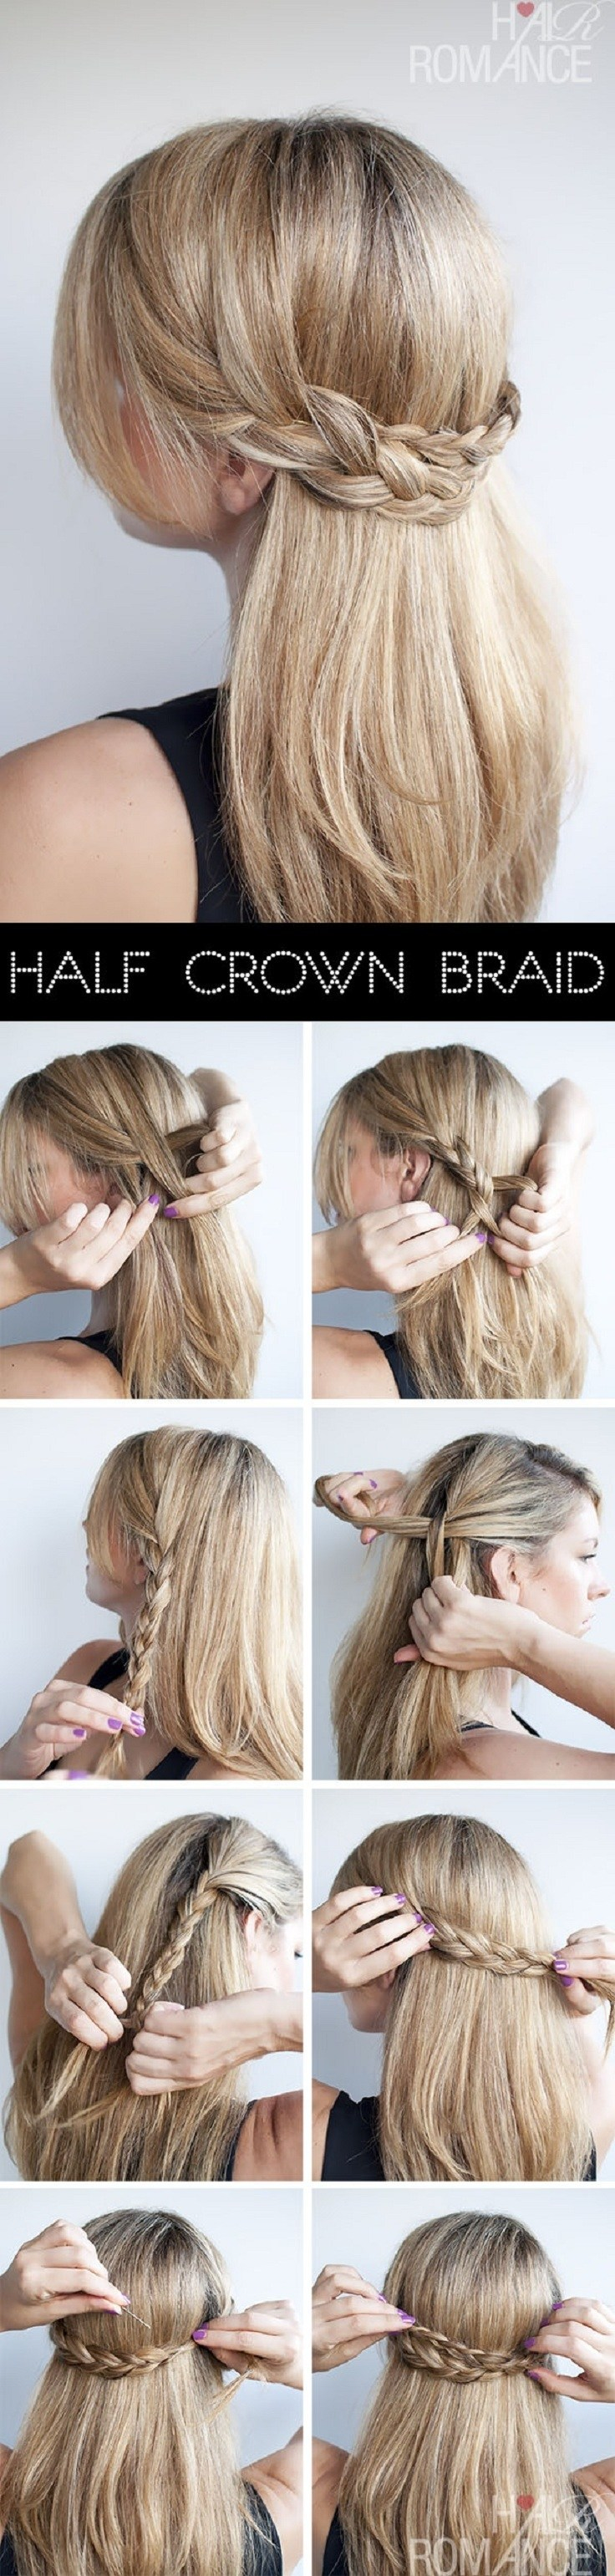 Cool-Braide-Hairstyle-Ideas 20 Cute and Easy Braided Hairstyle Tutorials